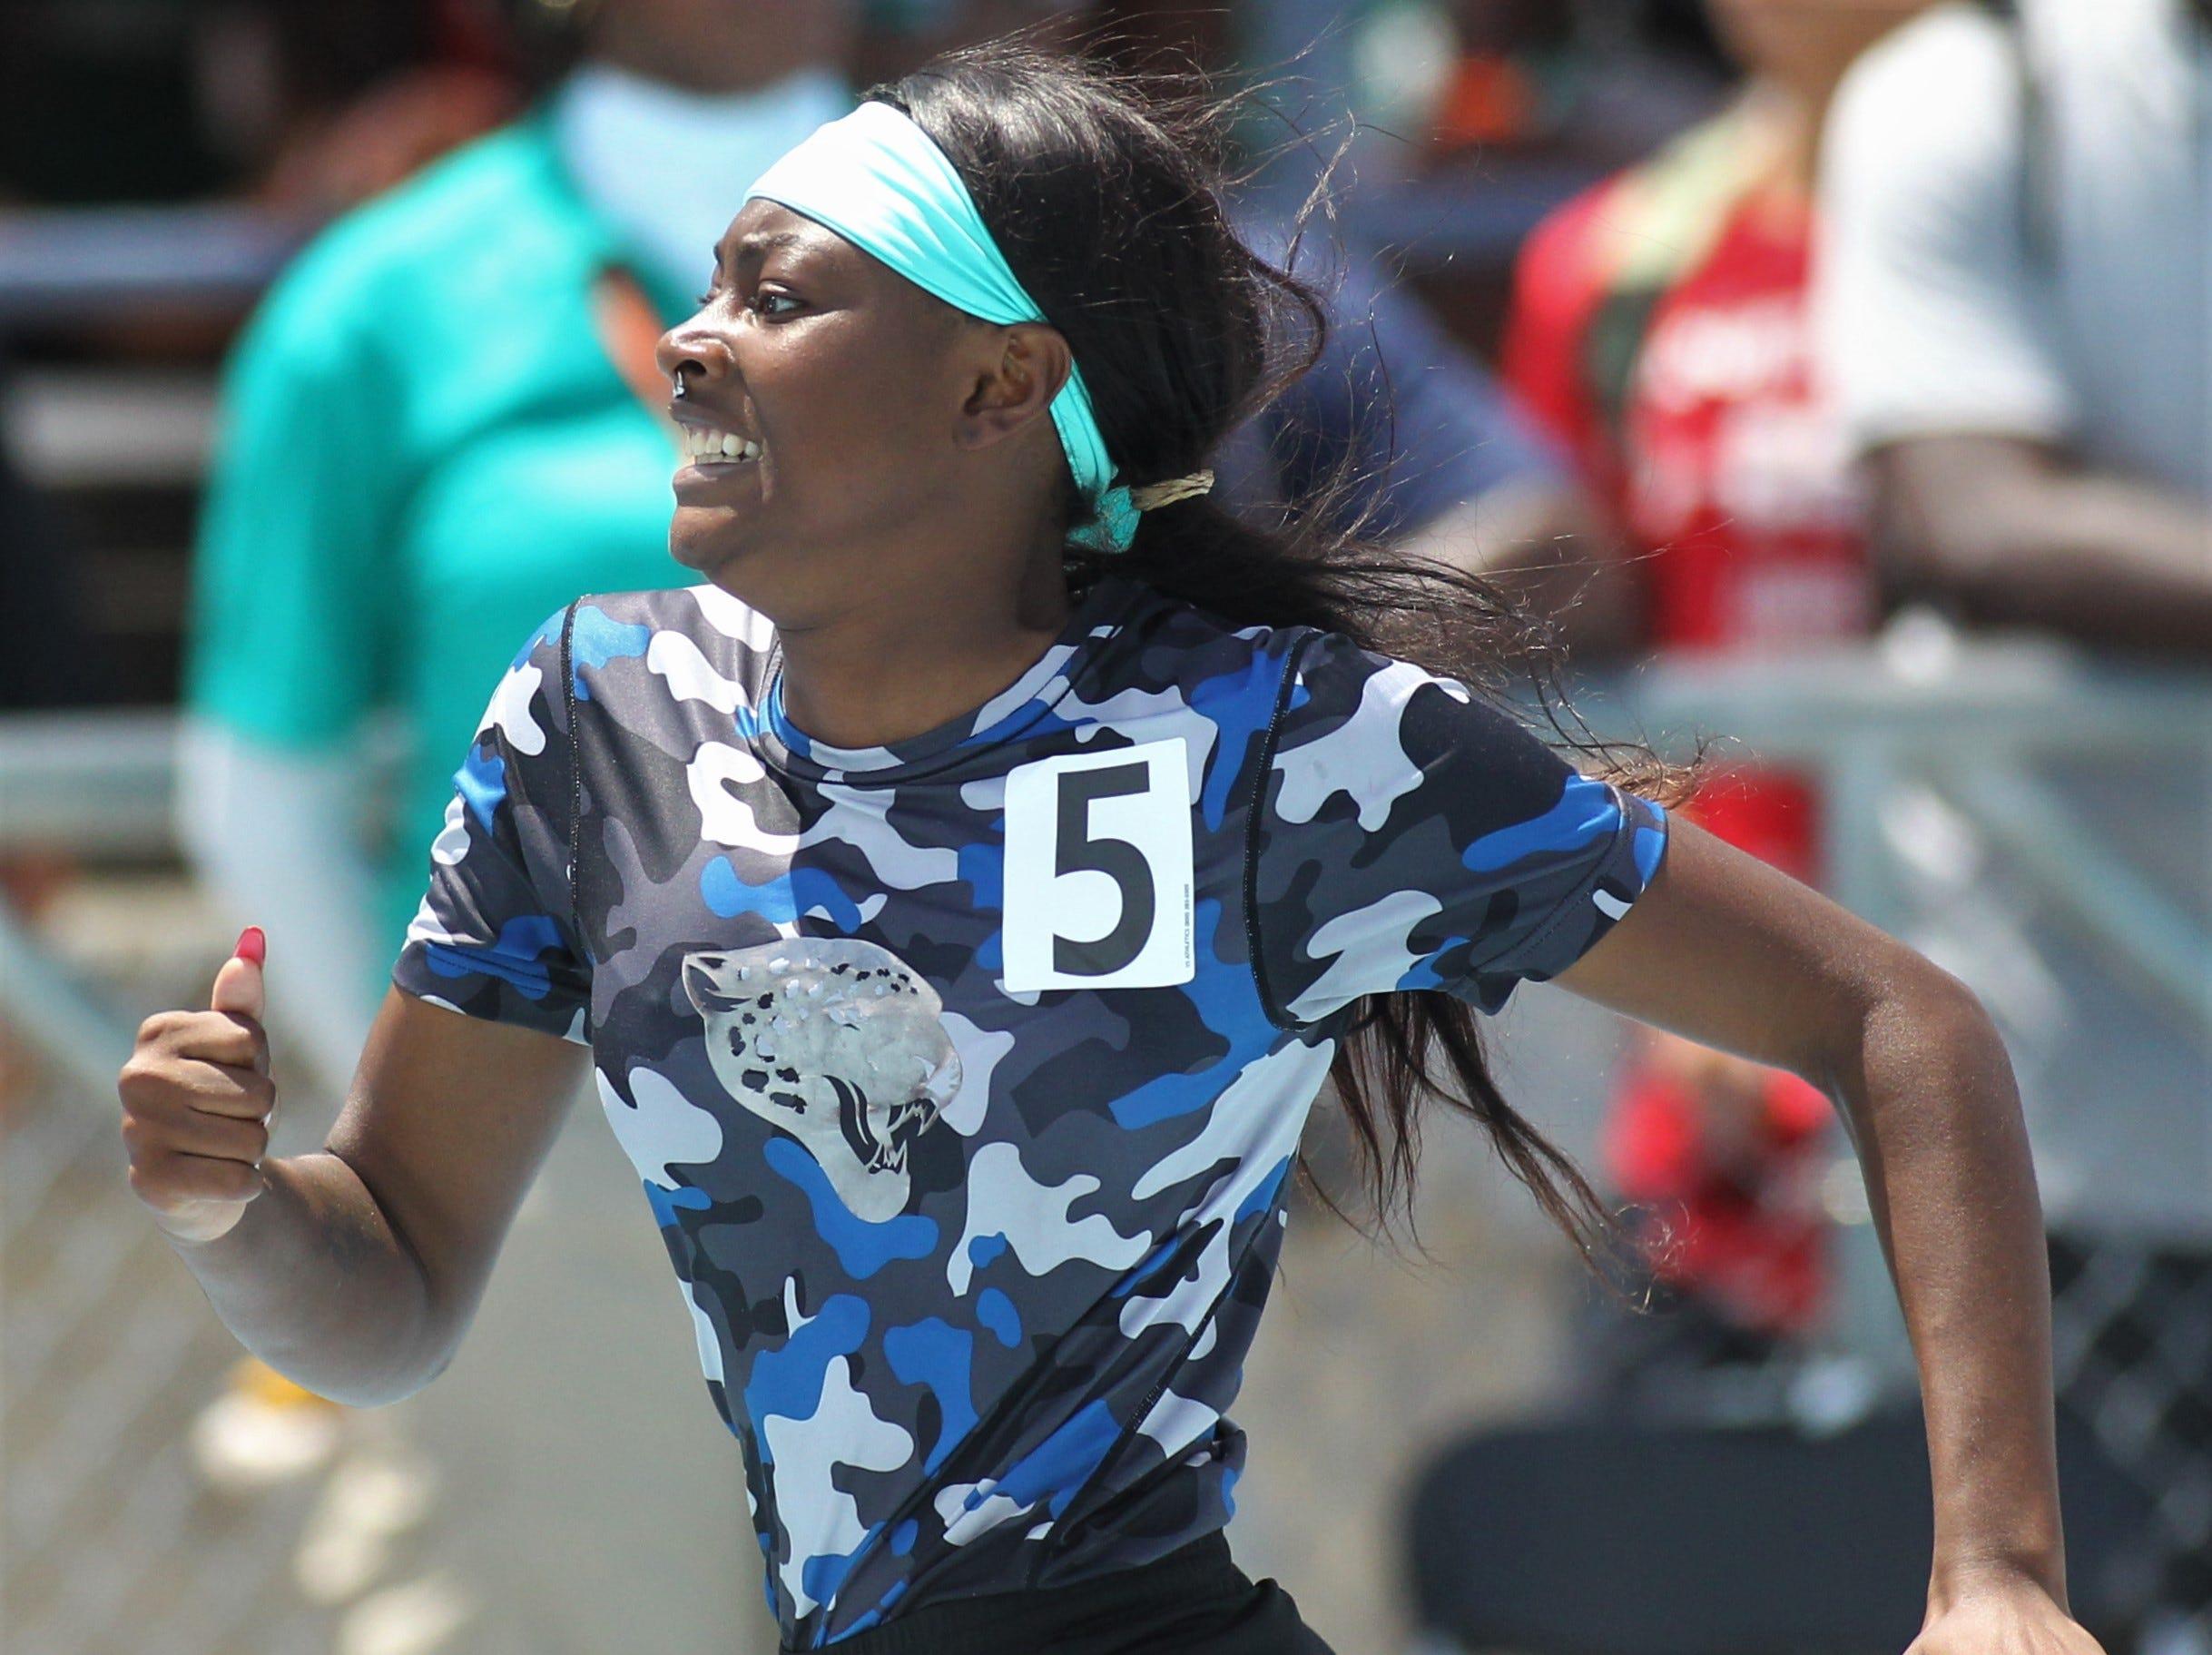 Gadsden County senior Janasia Cox took silver in the Class 2A 300m hurdles at the FHSAA Track and Field State Championships at UNF's Hodges Stadium in Jacksonville on May 4, 2019.